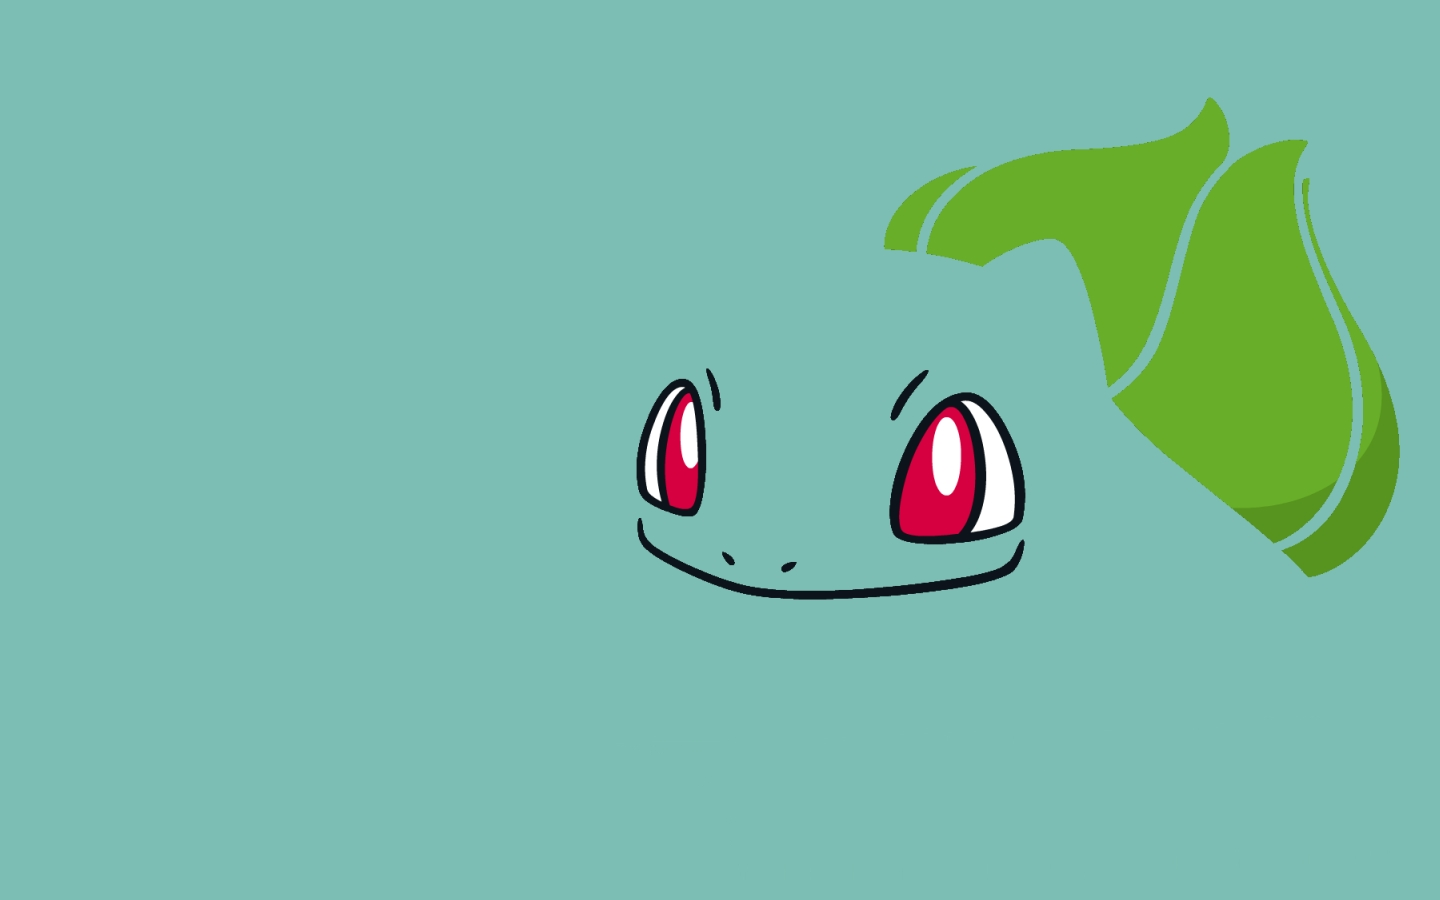 bulbasaur evolution wallpaper images - photo #8